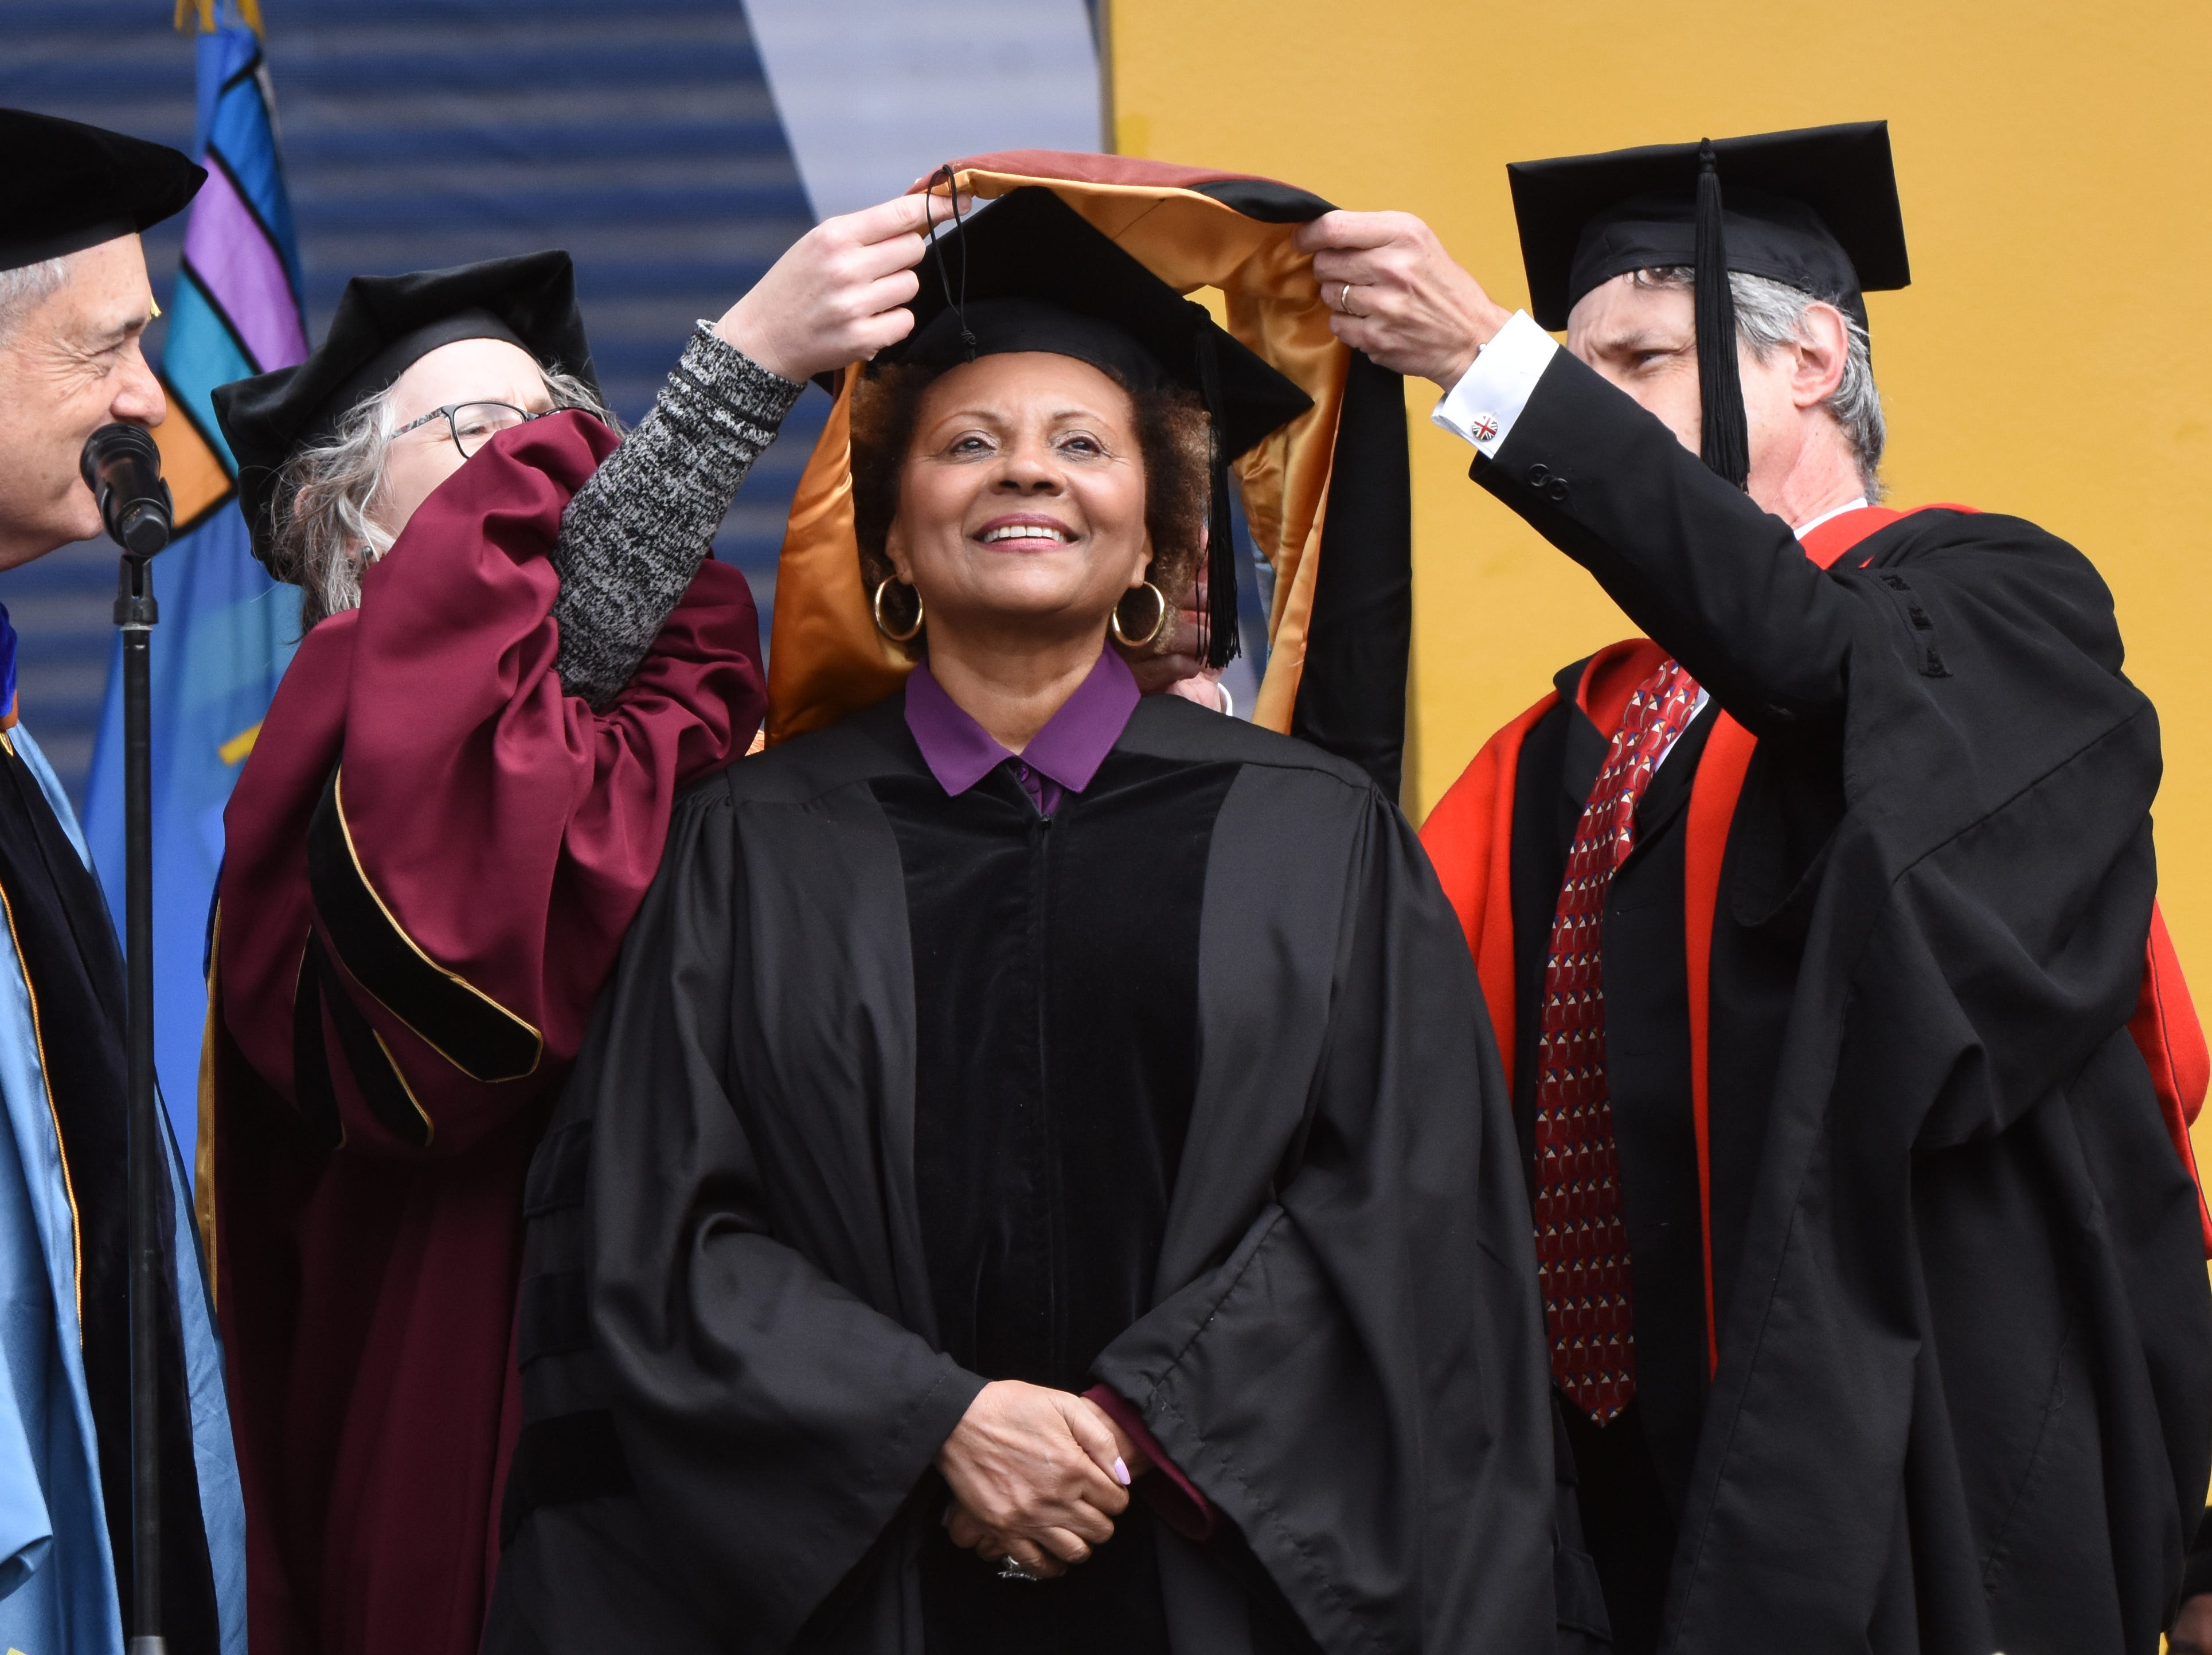 Actress Leslie Uggams receives an honorary degree during commencement exercises in Ann Arbor .